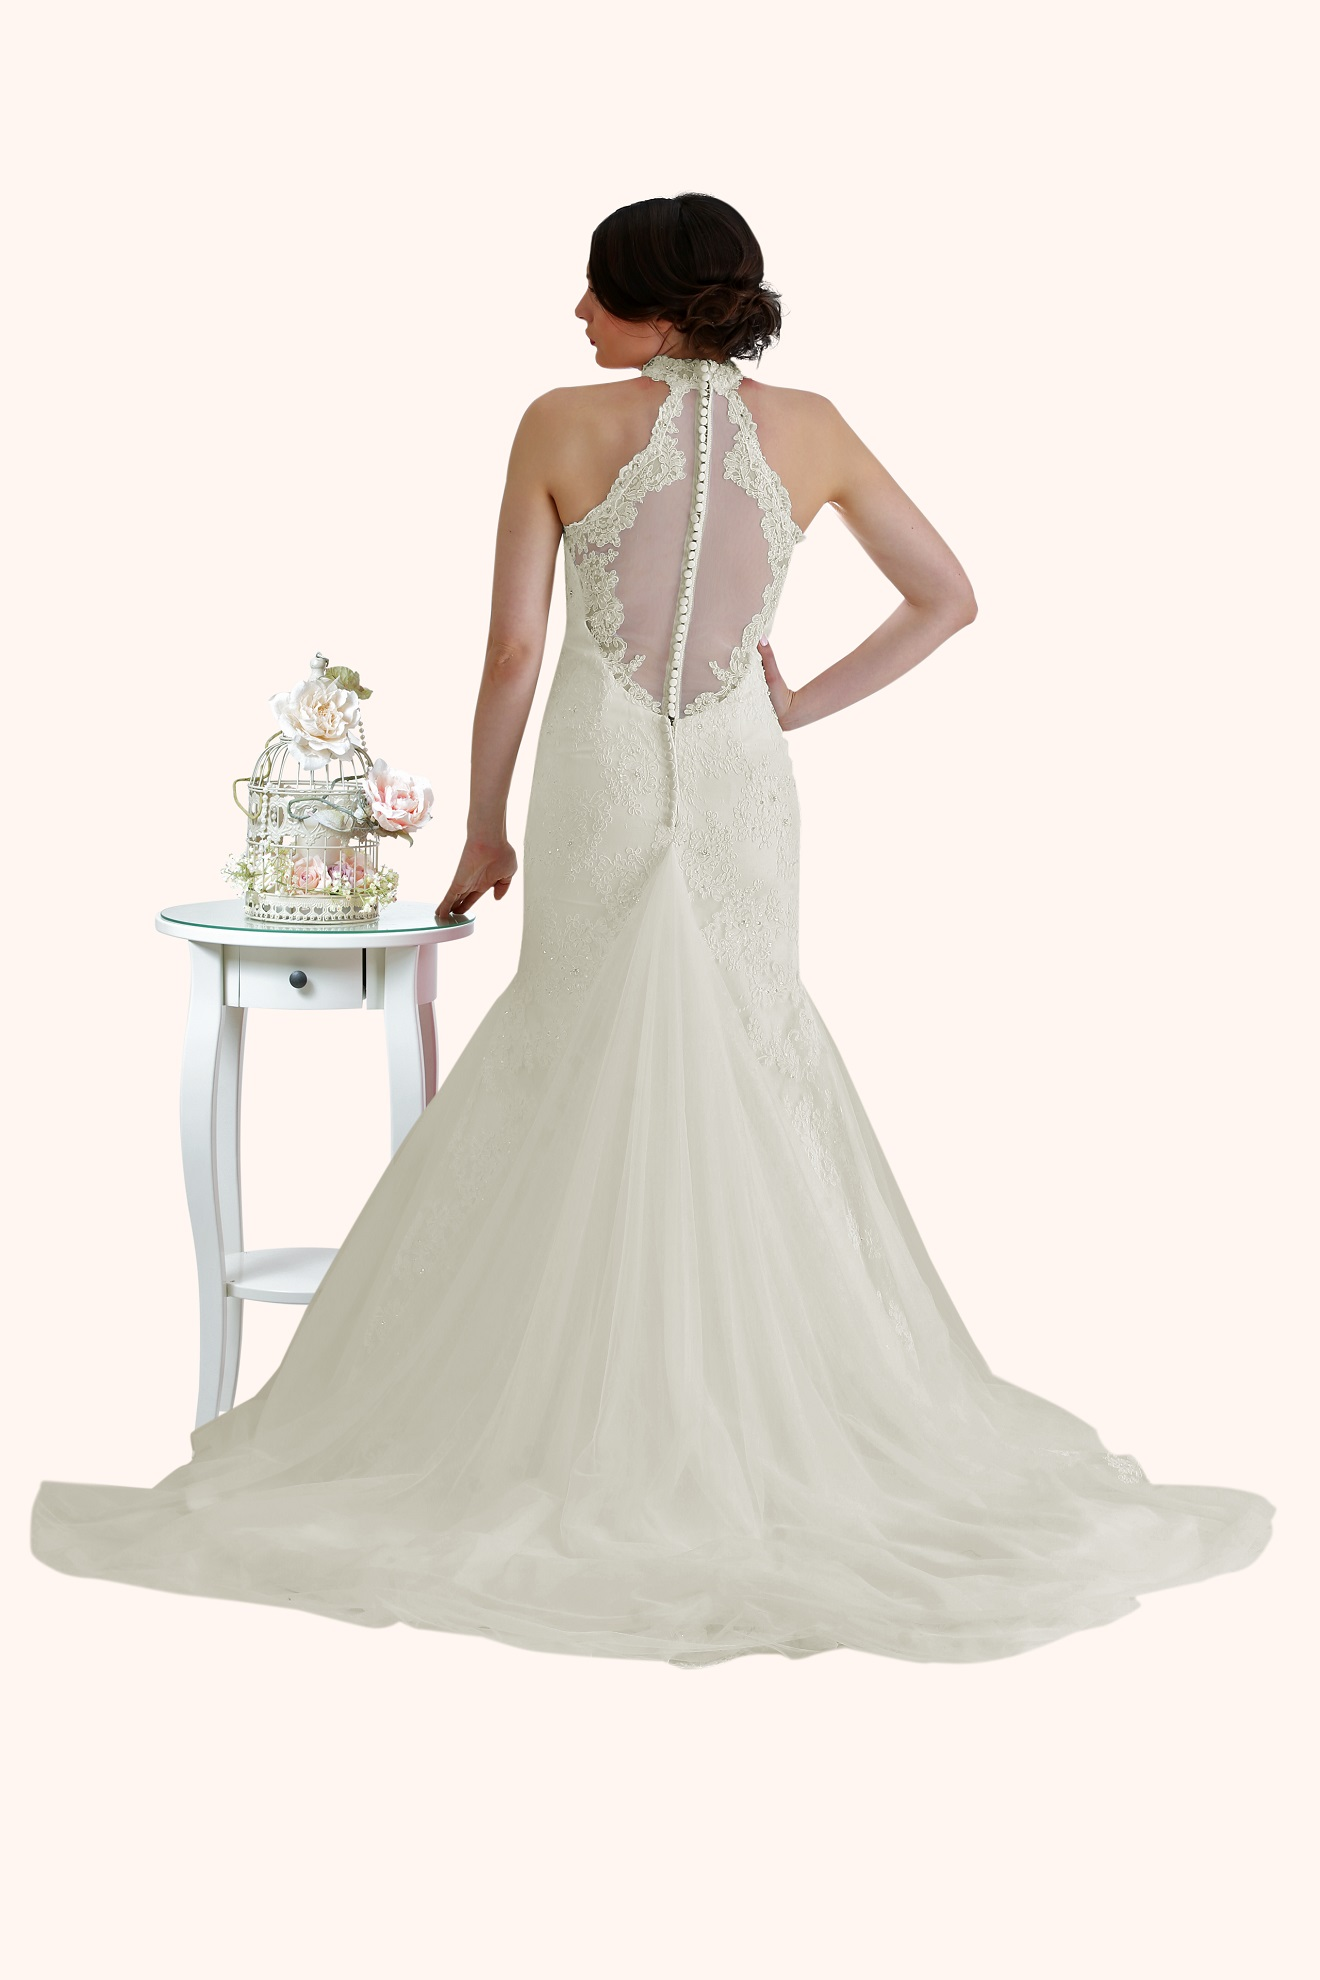 Zara - Lace High Neck Low Back Wedding Dress